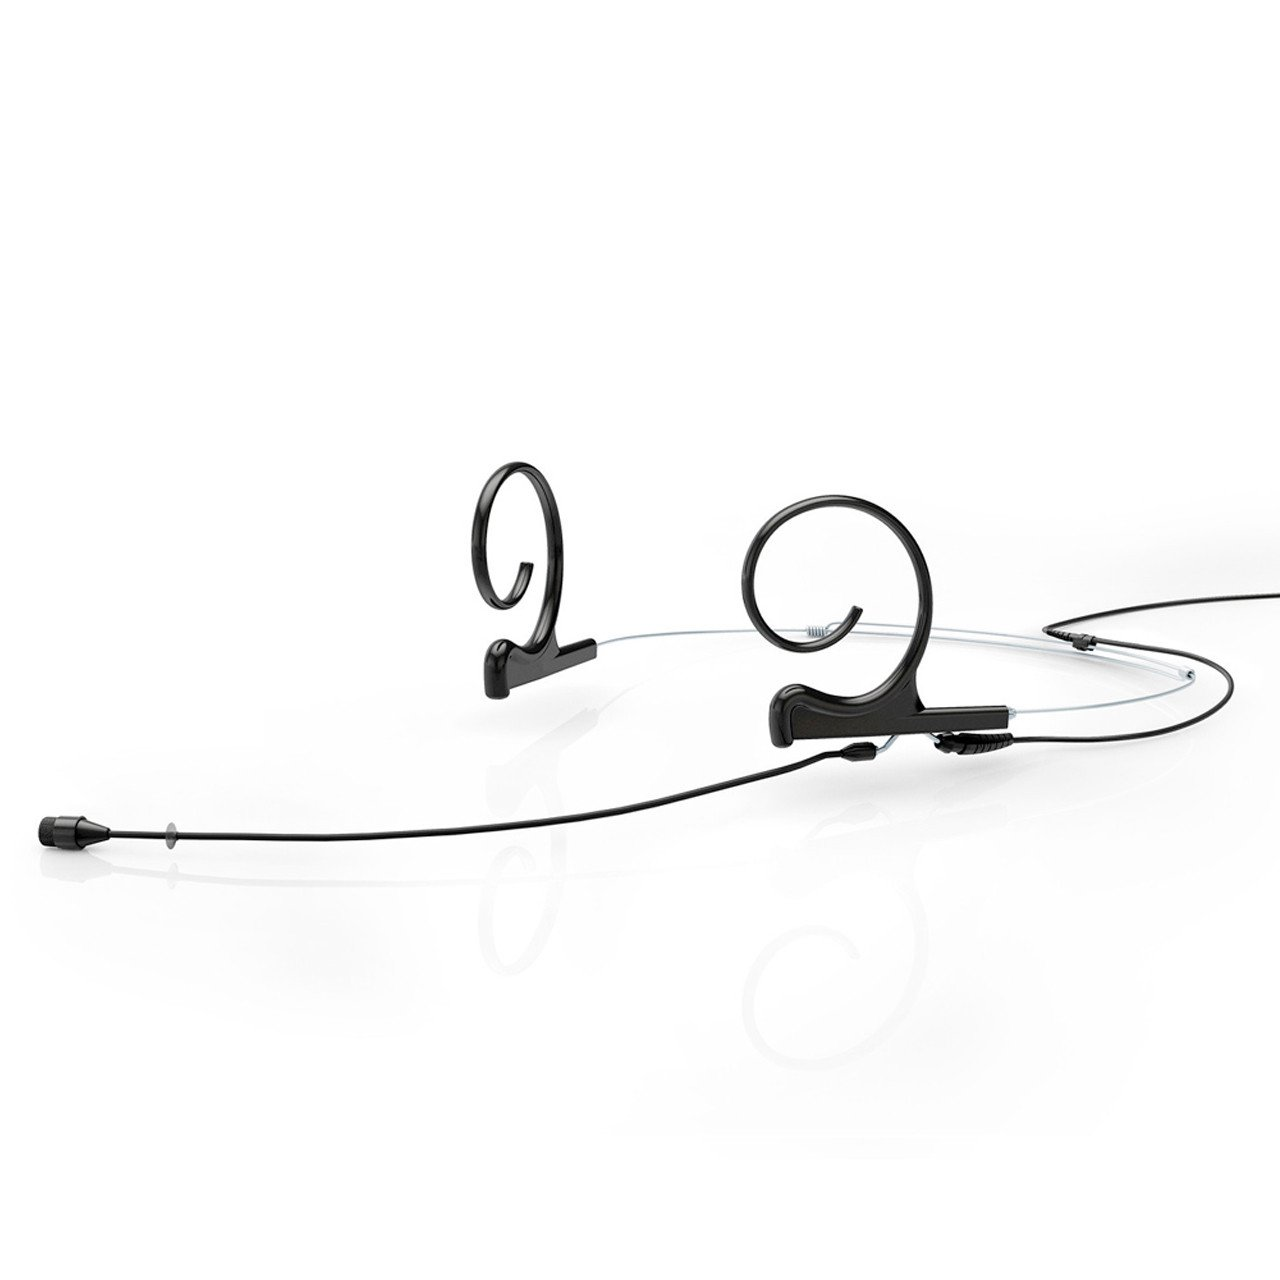 DPA d:fine 66 Dual-ear Omnidirectional Headset Microphone